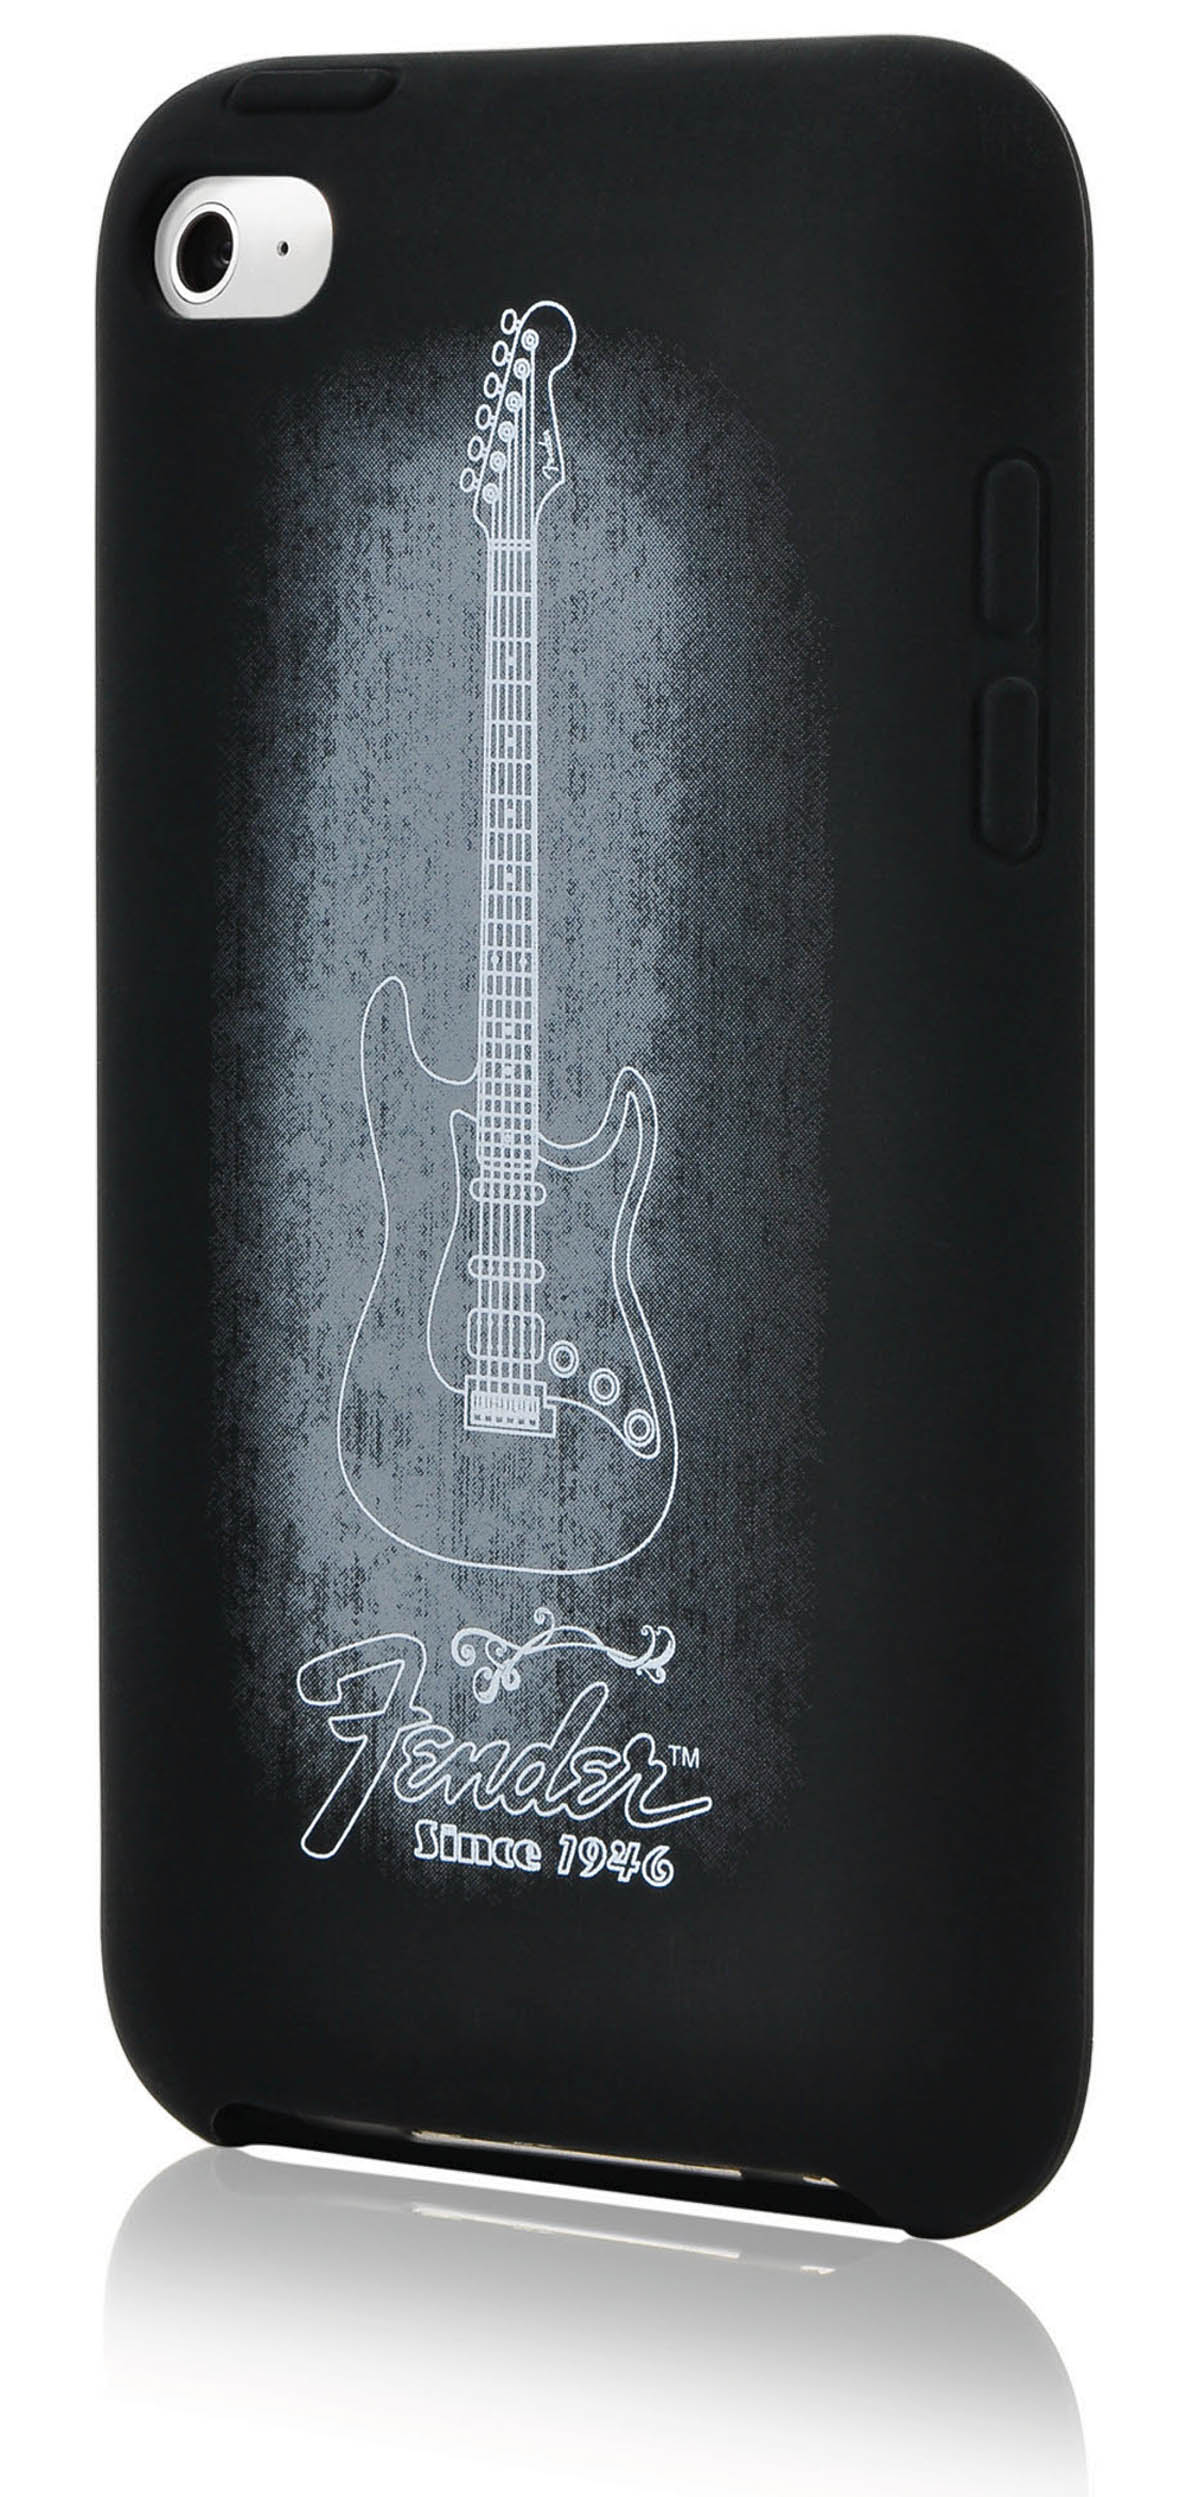 Fender iPod Touch 4th Gen Protective Genuine Black: Accessory